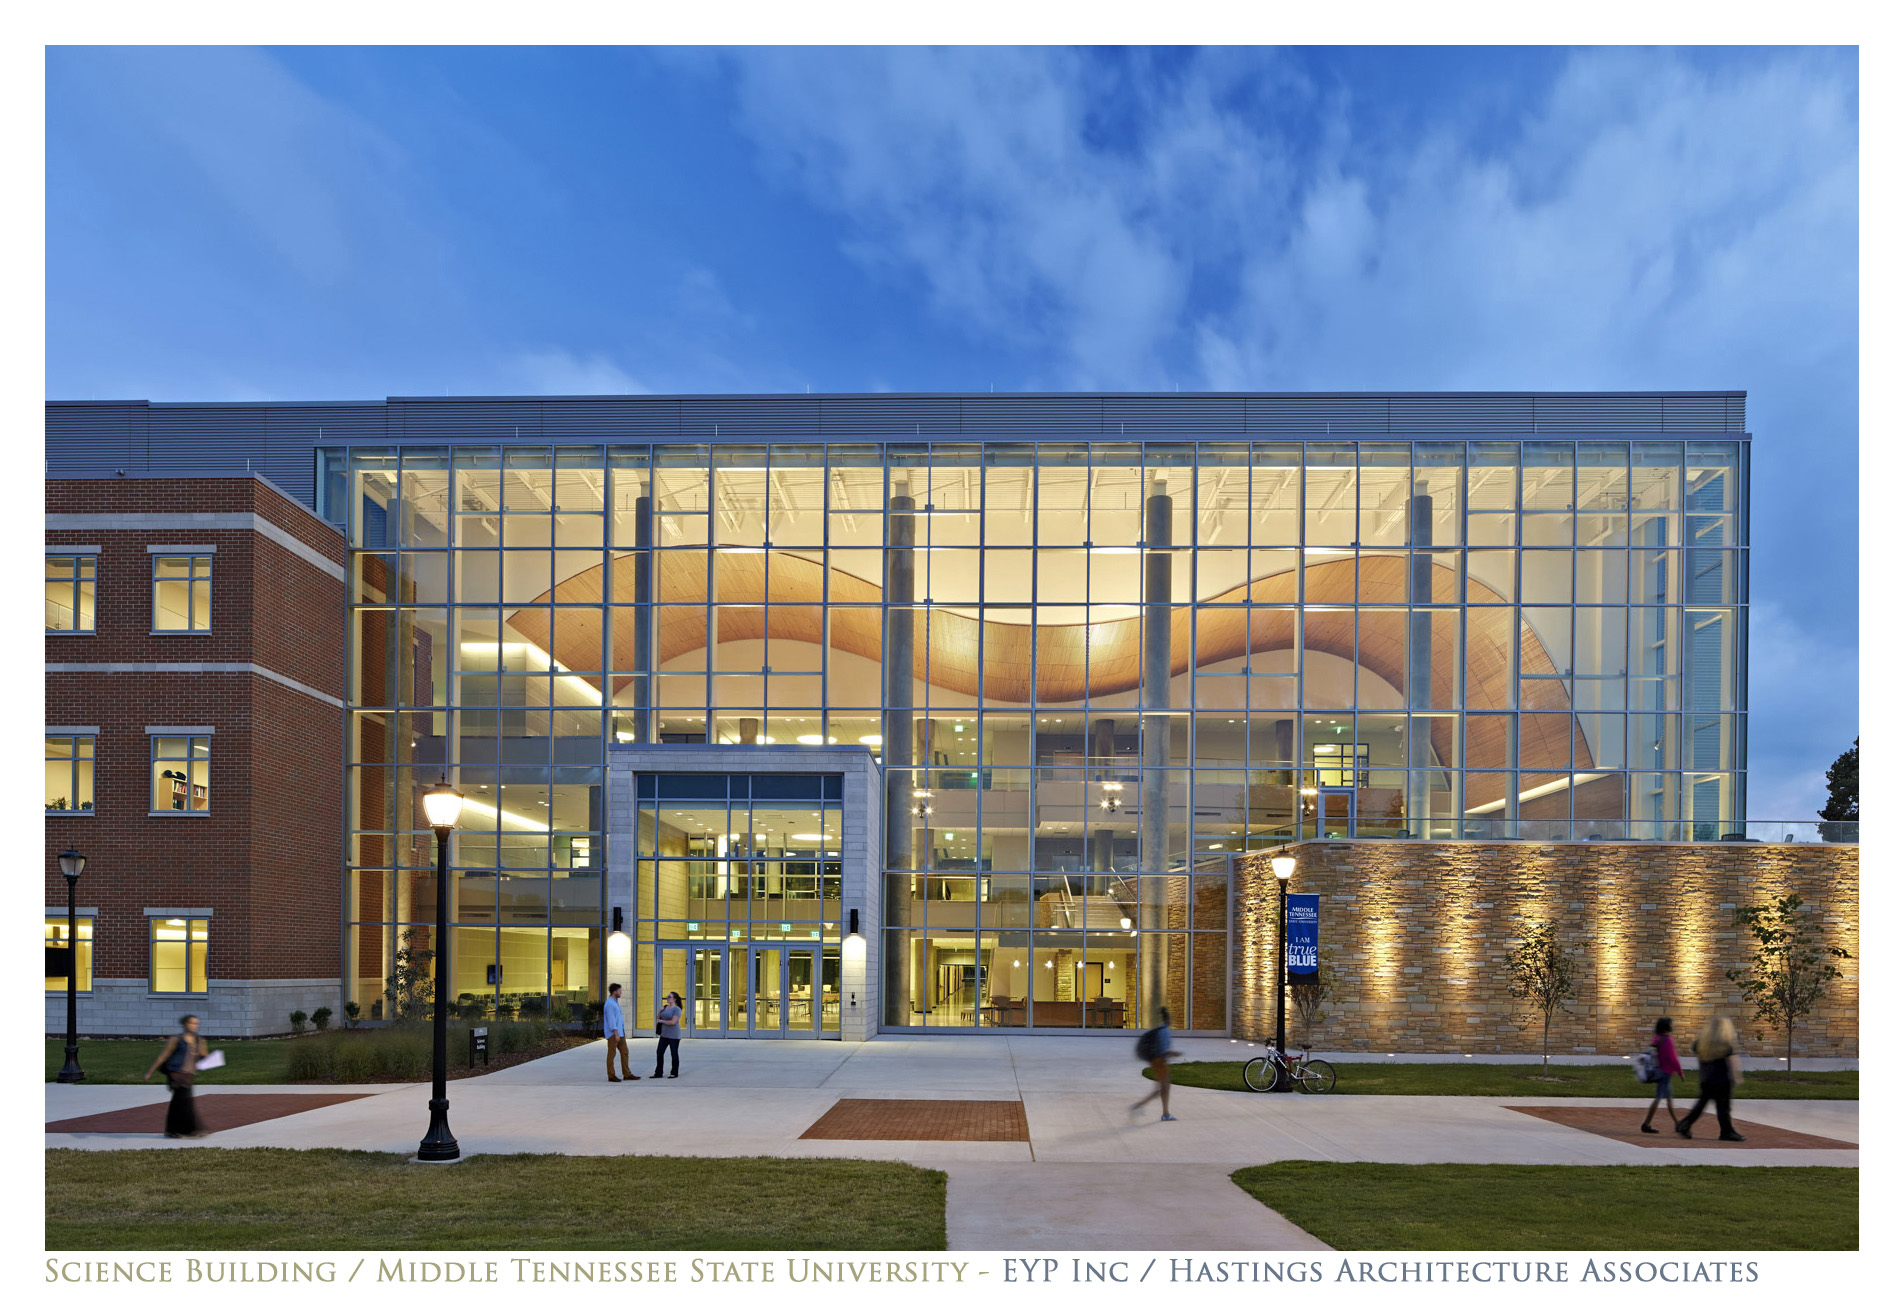 032_Robert-Benson-Photography-EYP-Architecture-Engineering-Middle-Tennessee-State-University-Science-Building-01.jpg